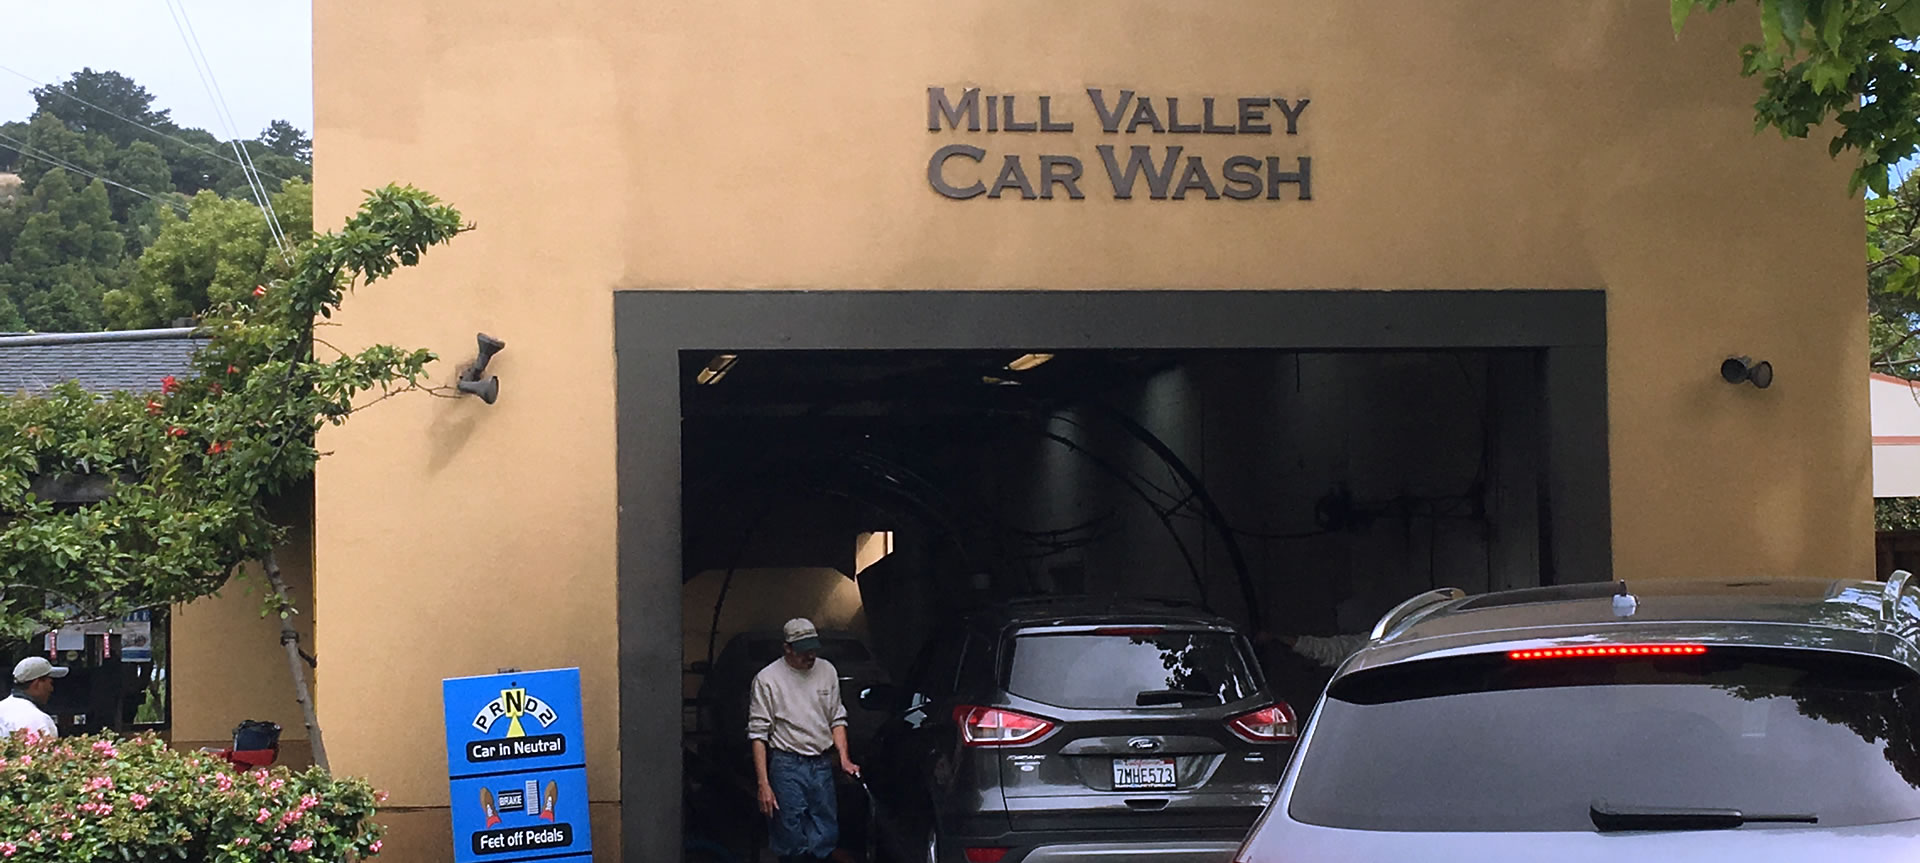 Mill Valley Car Wash